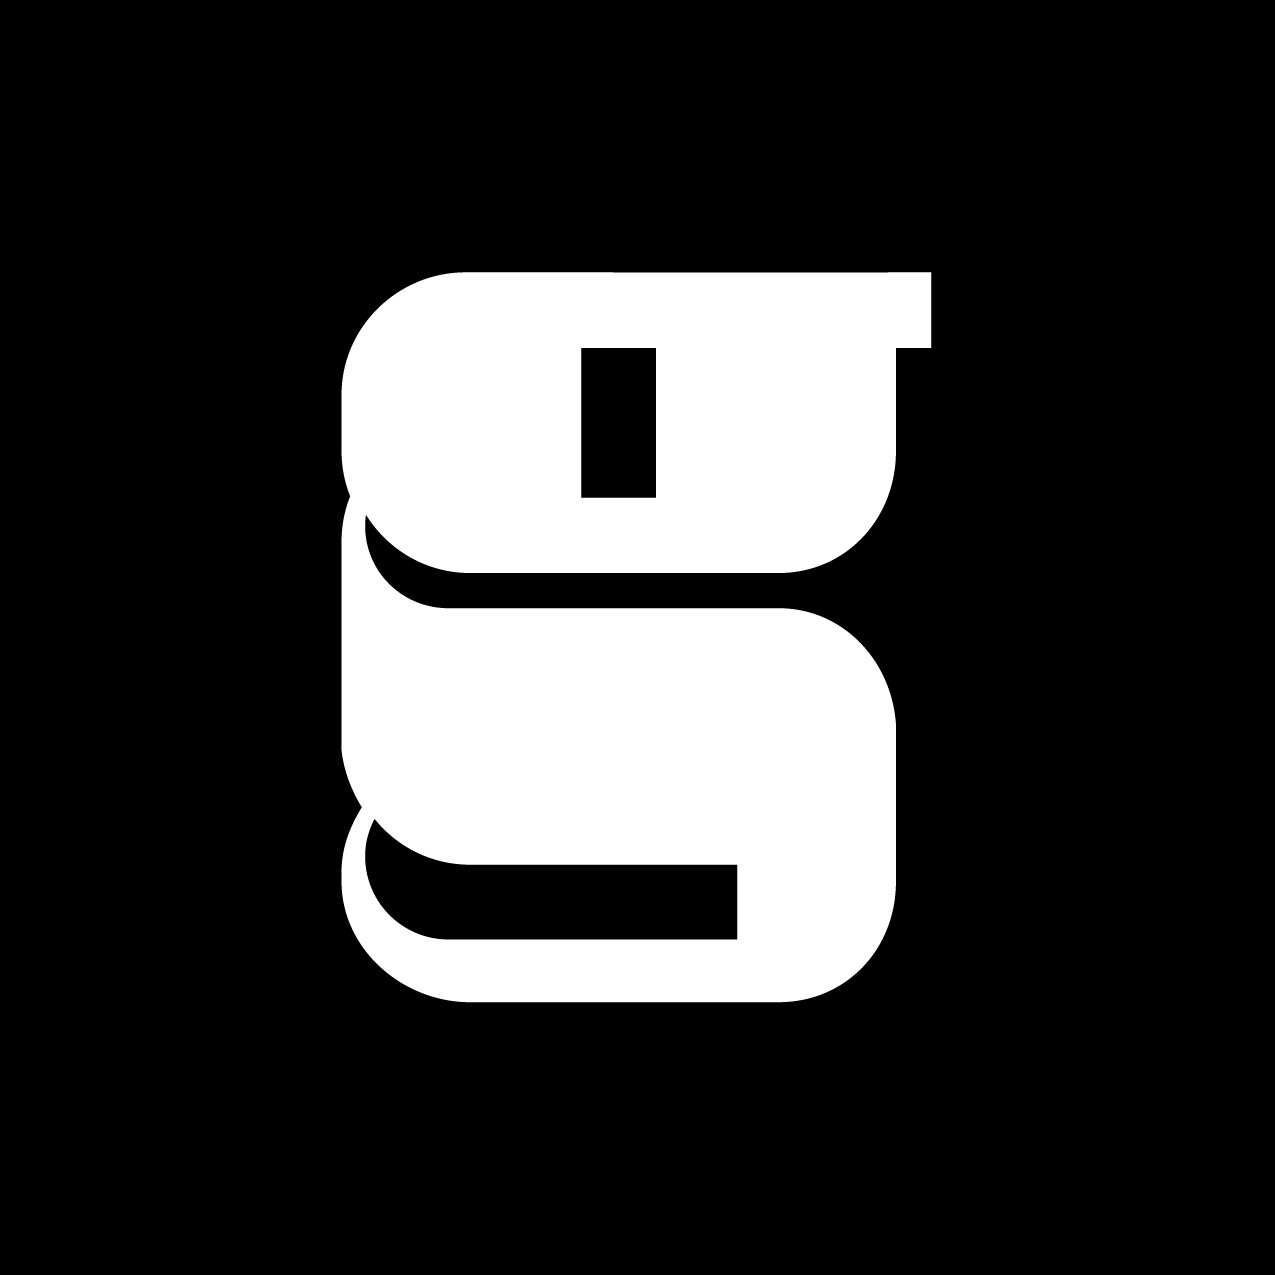 Letter G2 design by Furia